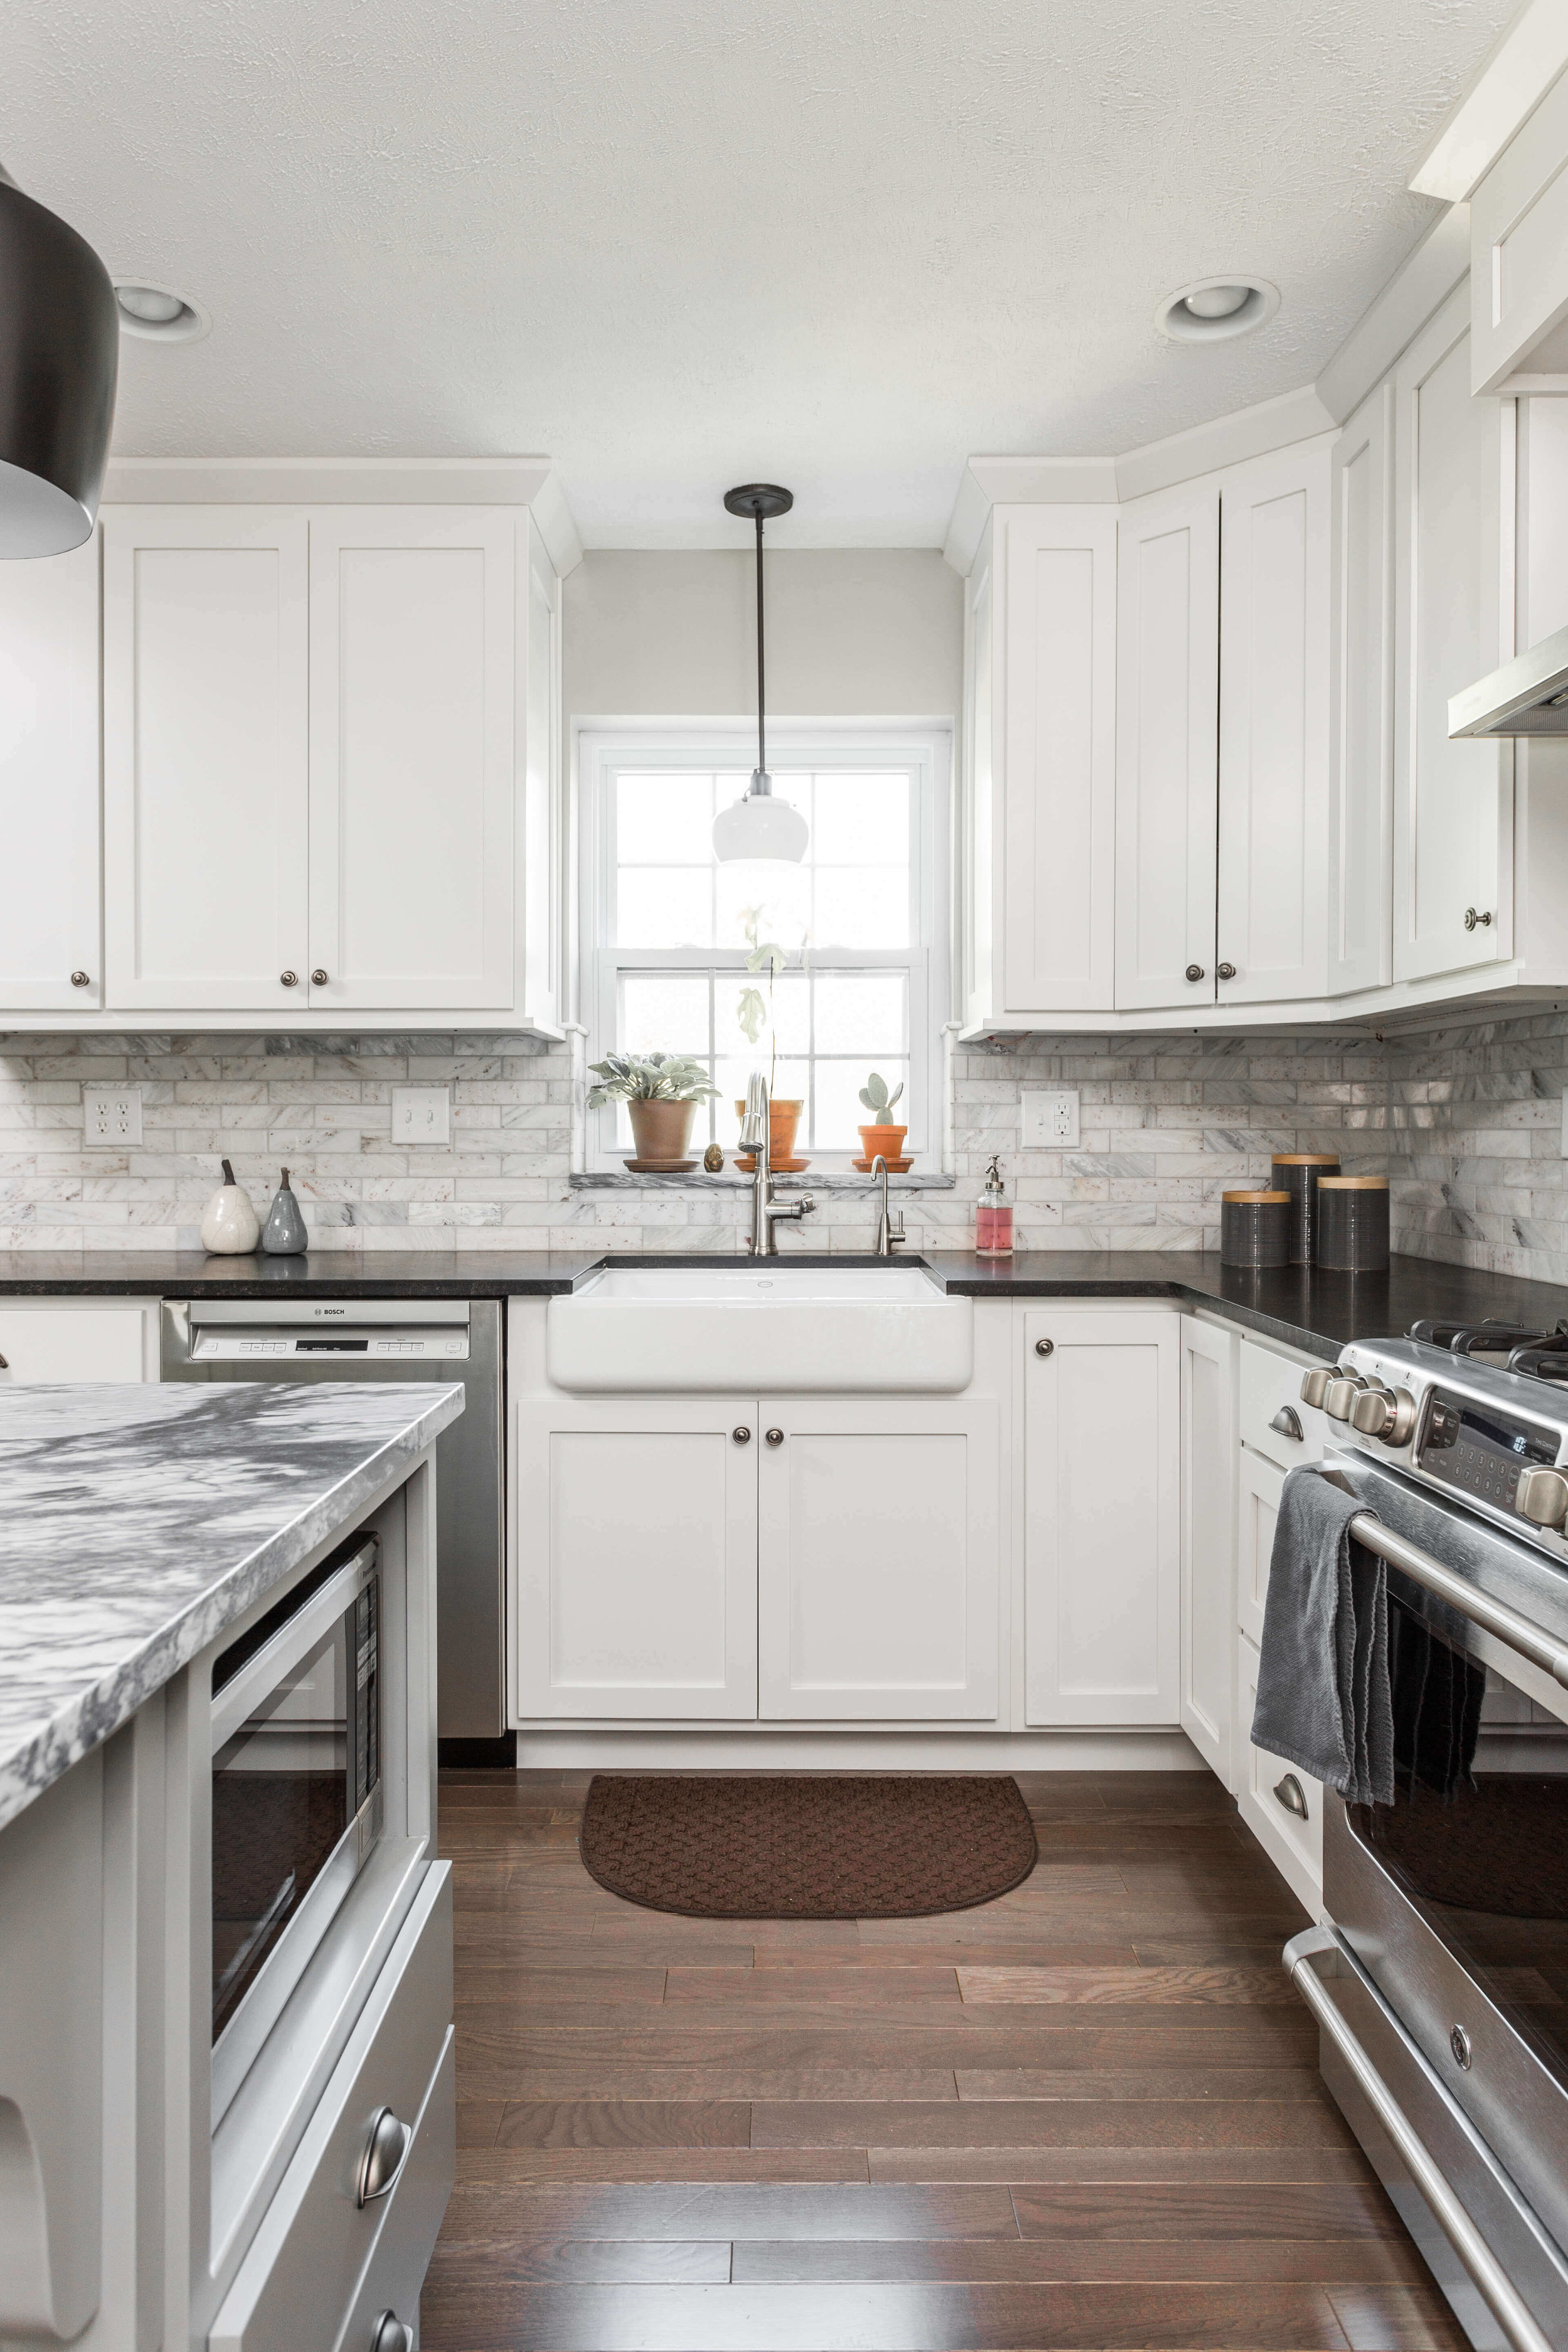 classic andmodern - Kitchen Remodel